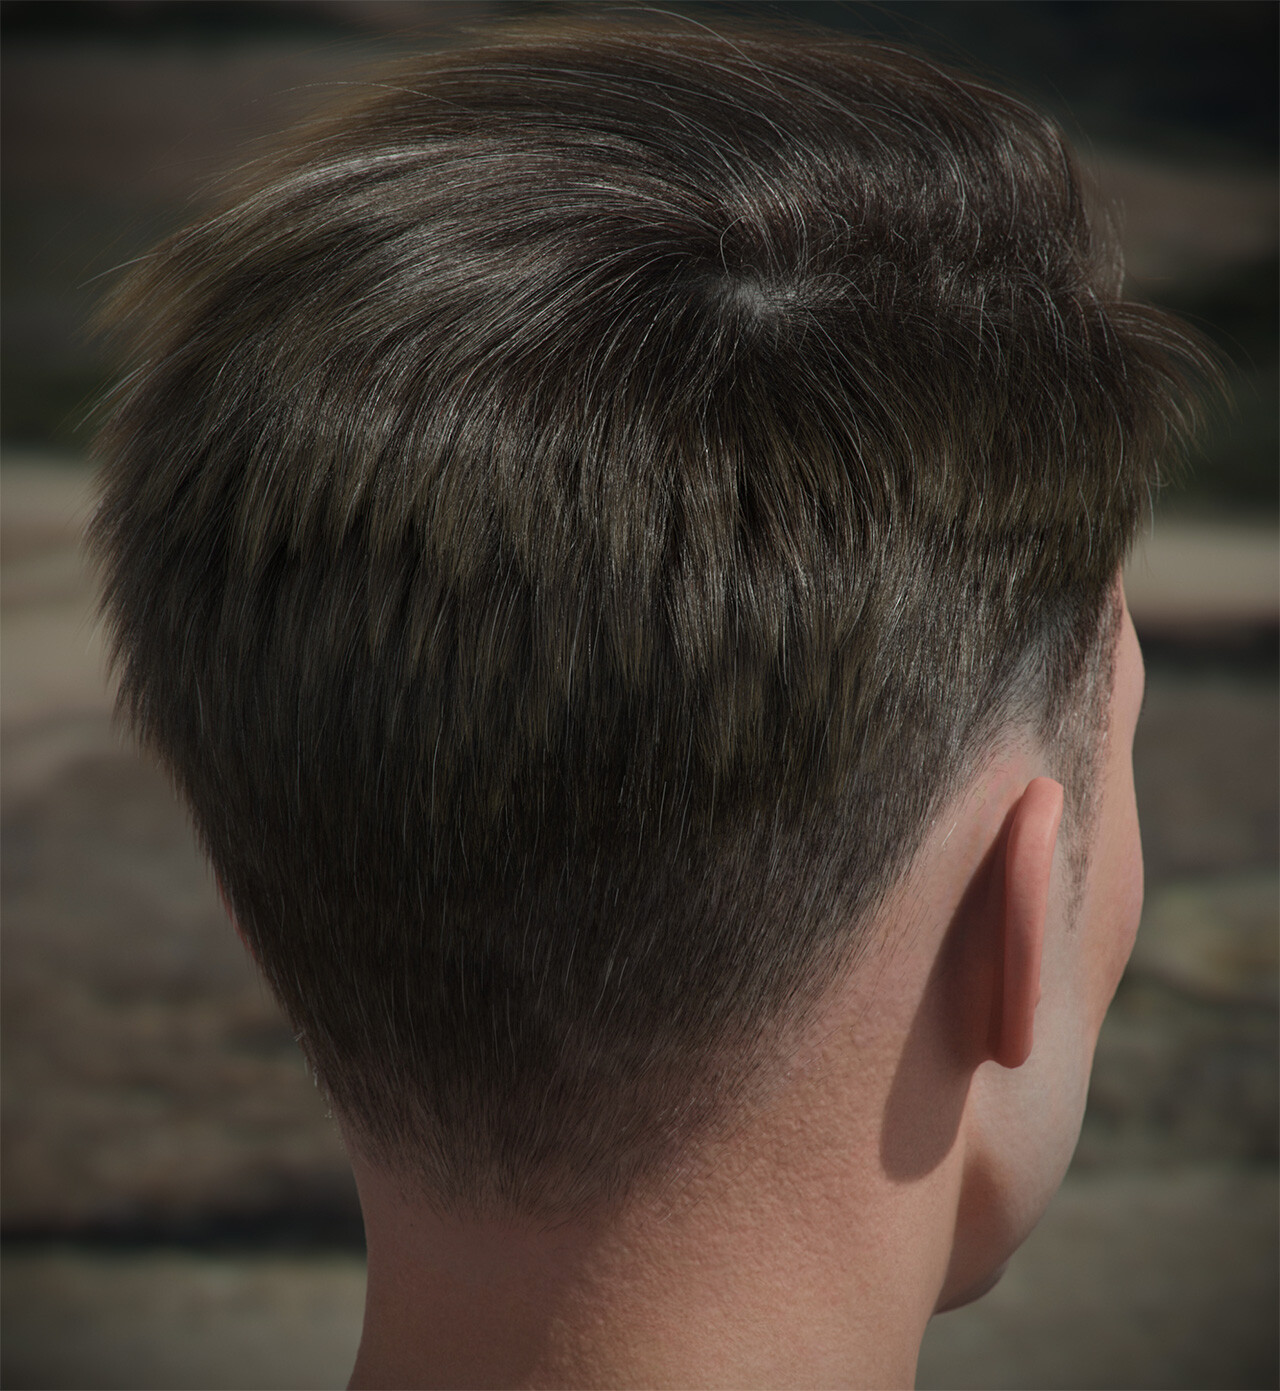 Andrew krivulya genry haircut 1 by akcharly cam04